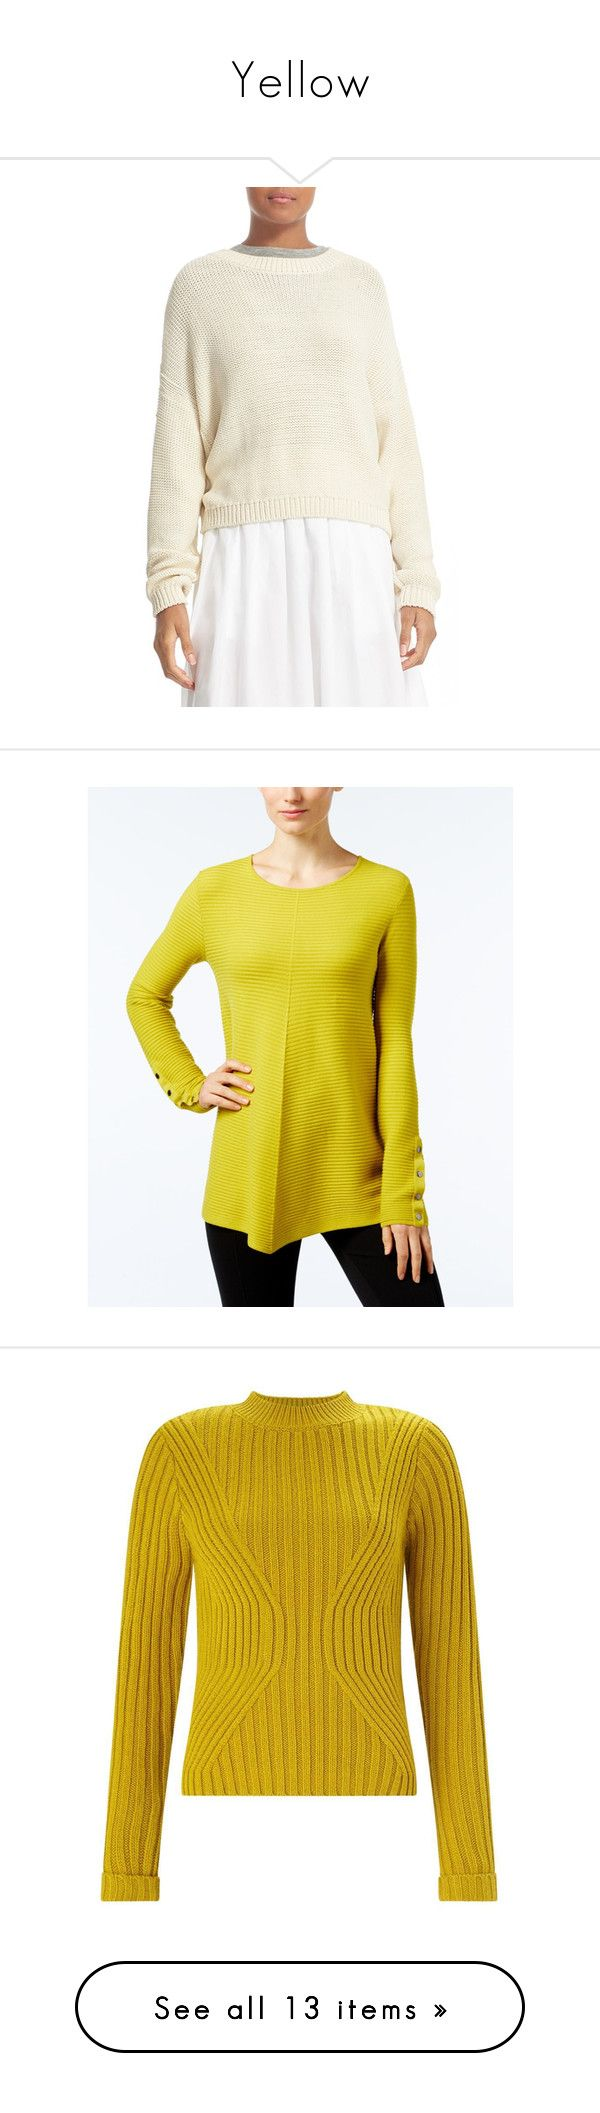 """Yellow"" by eleonora114310 ❤ liked on Polyvore featuring tops, sweaters, bleached, drop shoulder sweater, white slouchy sweater, white crew neck sweater, drop shoulder tops, white sweater, luxe lime and petite tops"